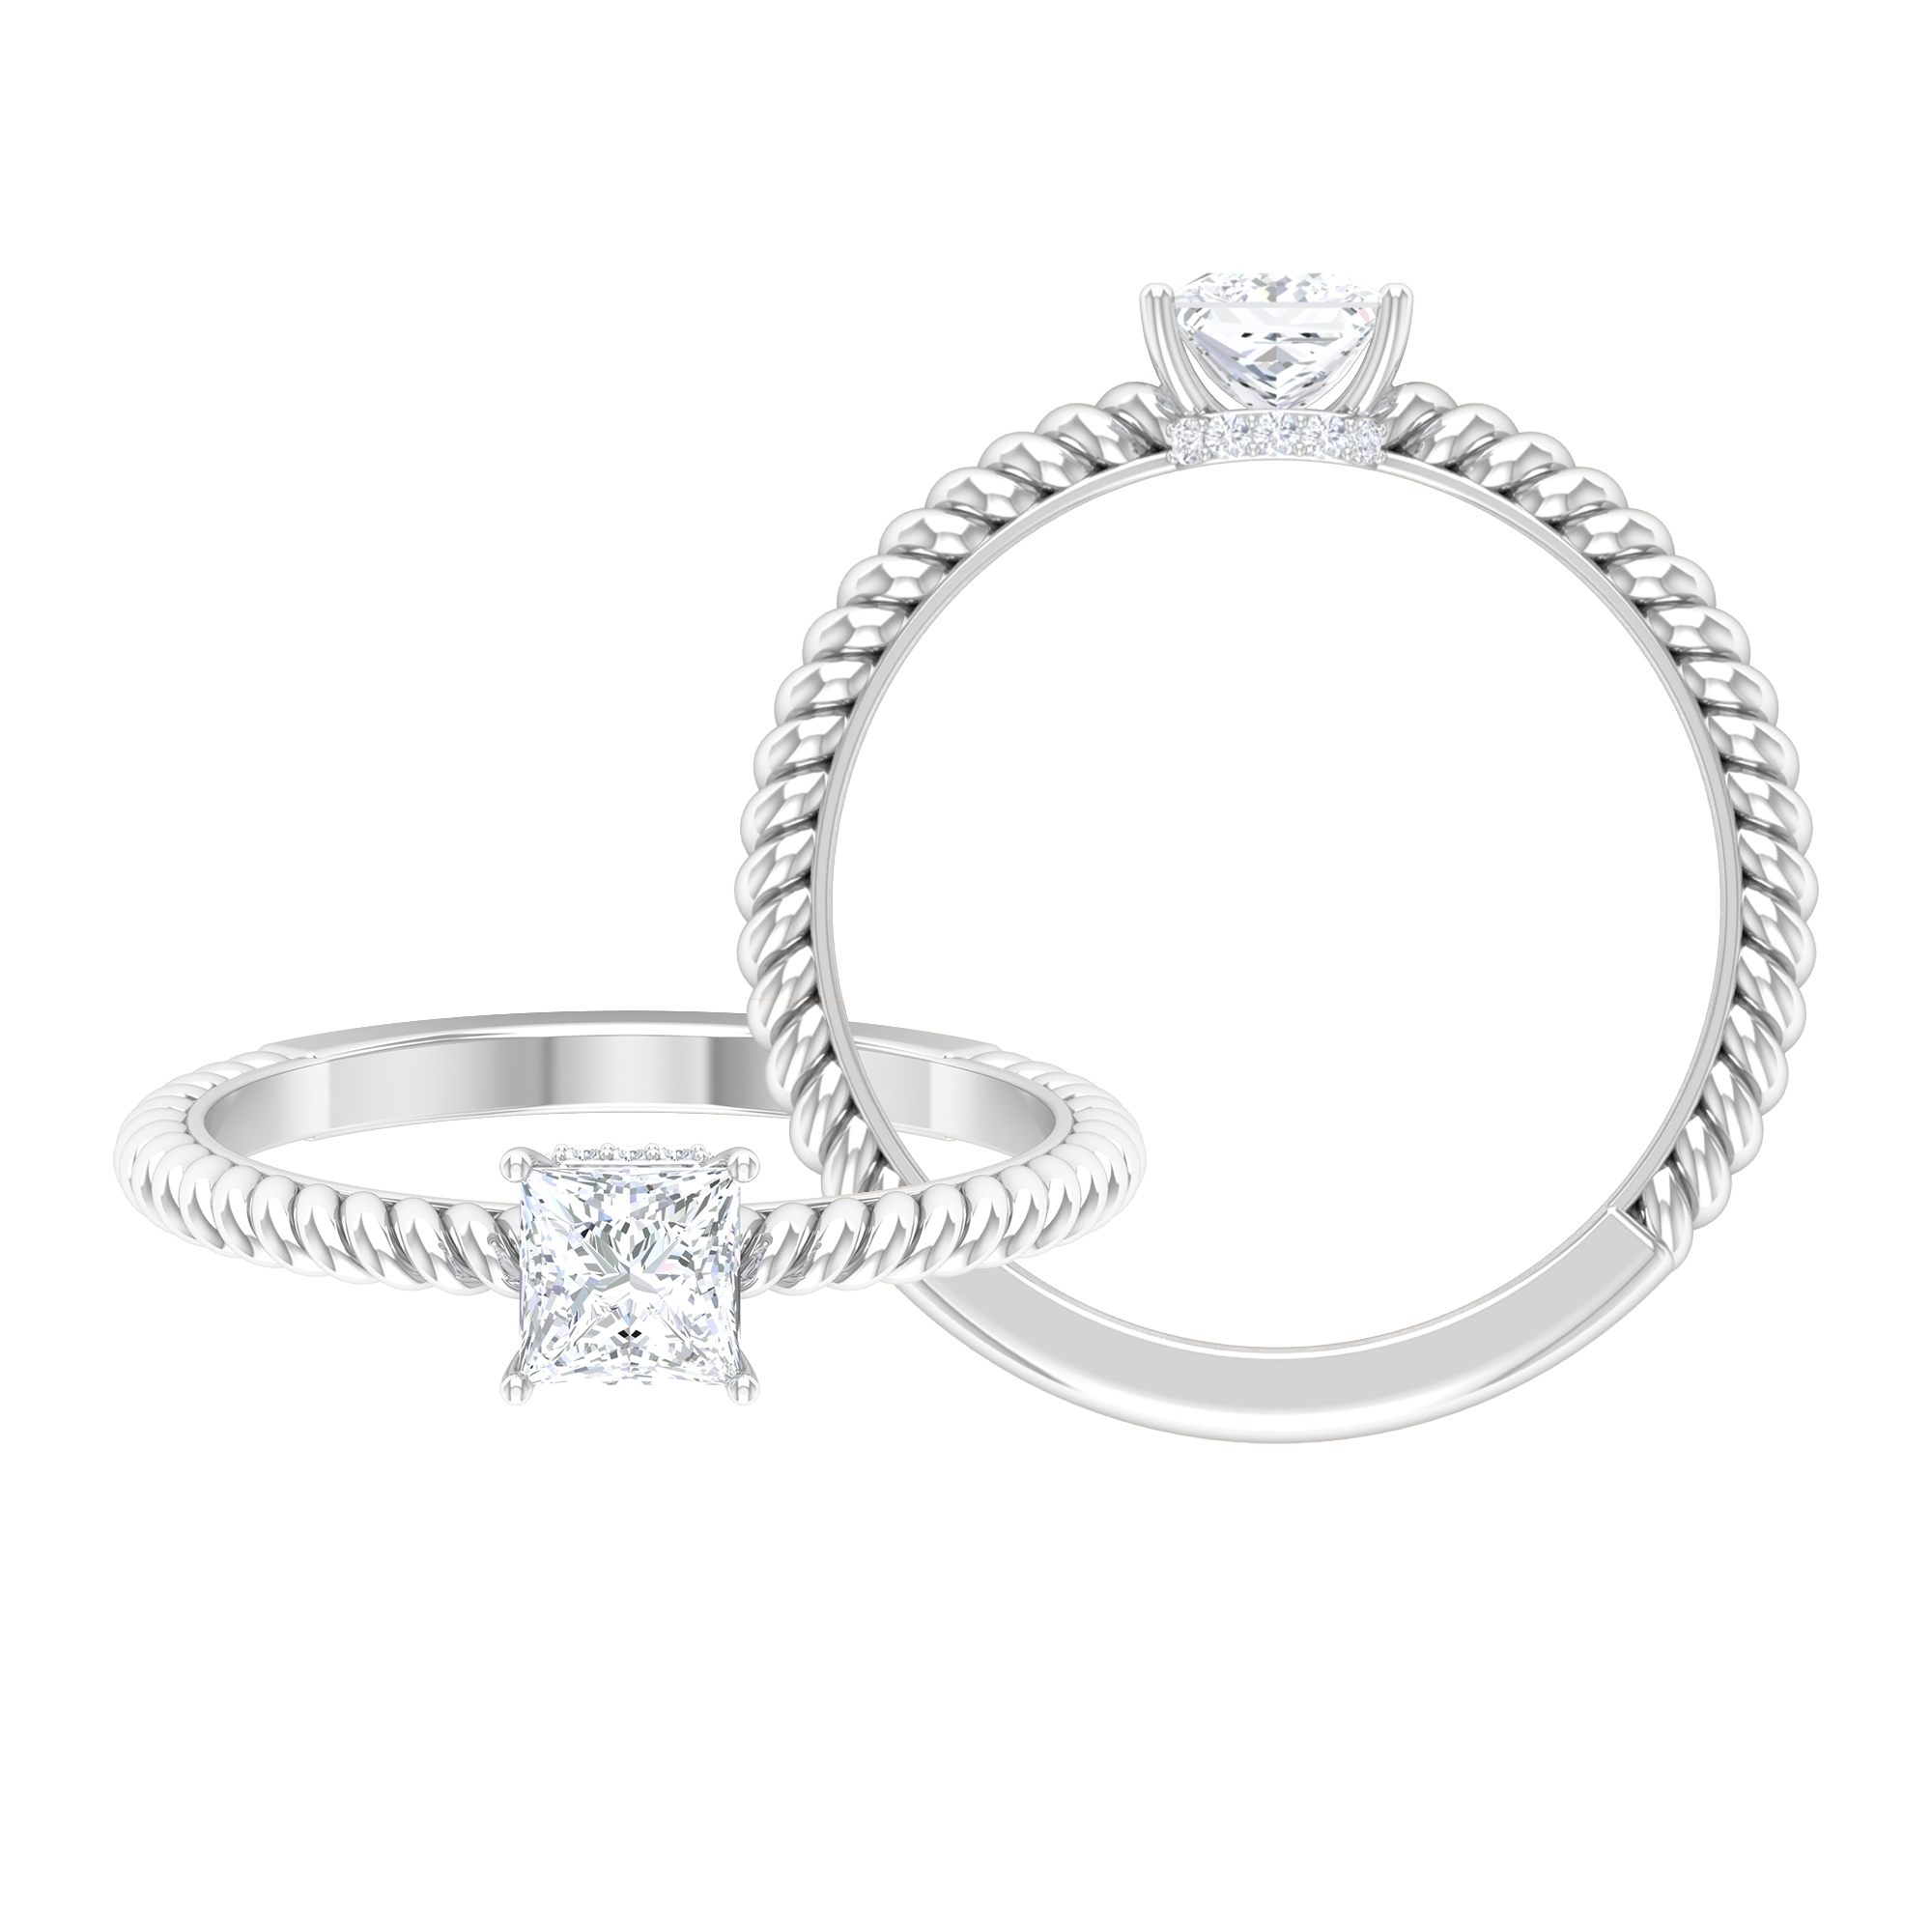 4.5 MM Princess Cut Solitaire Diamond Ring with Twisted Rope Shank and Hidden Halo Style